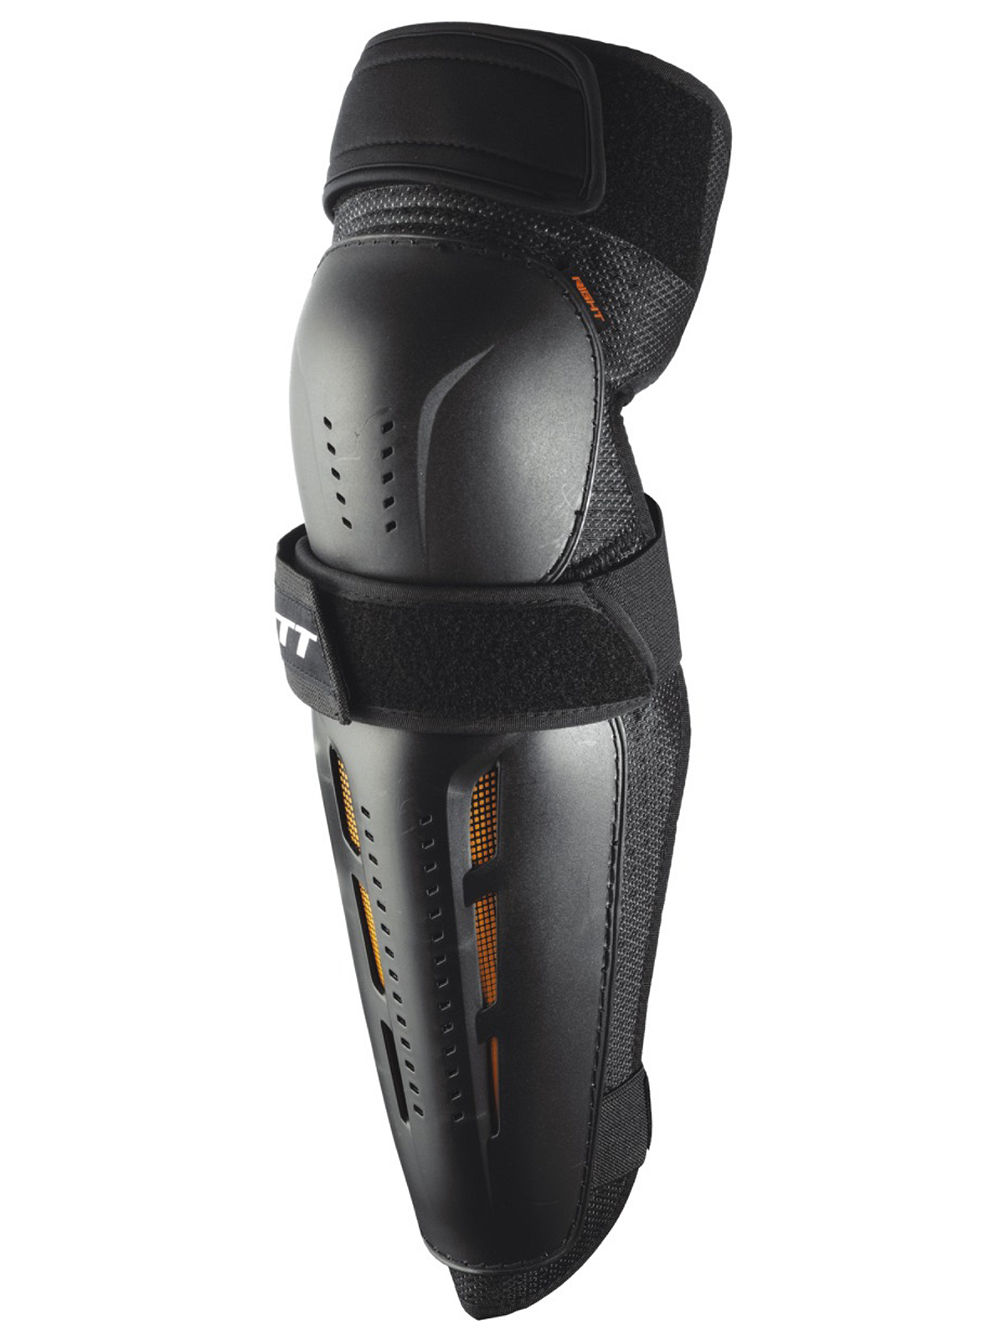 Officer Knee Guards